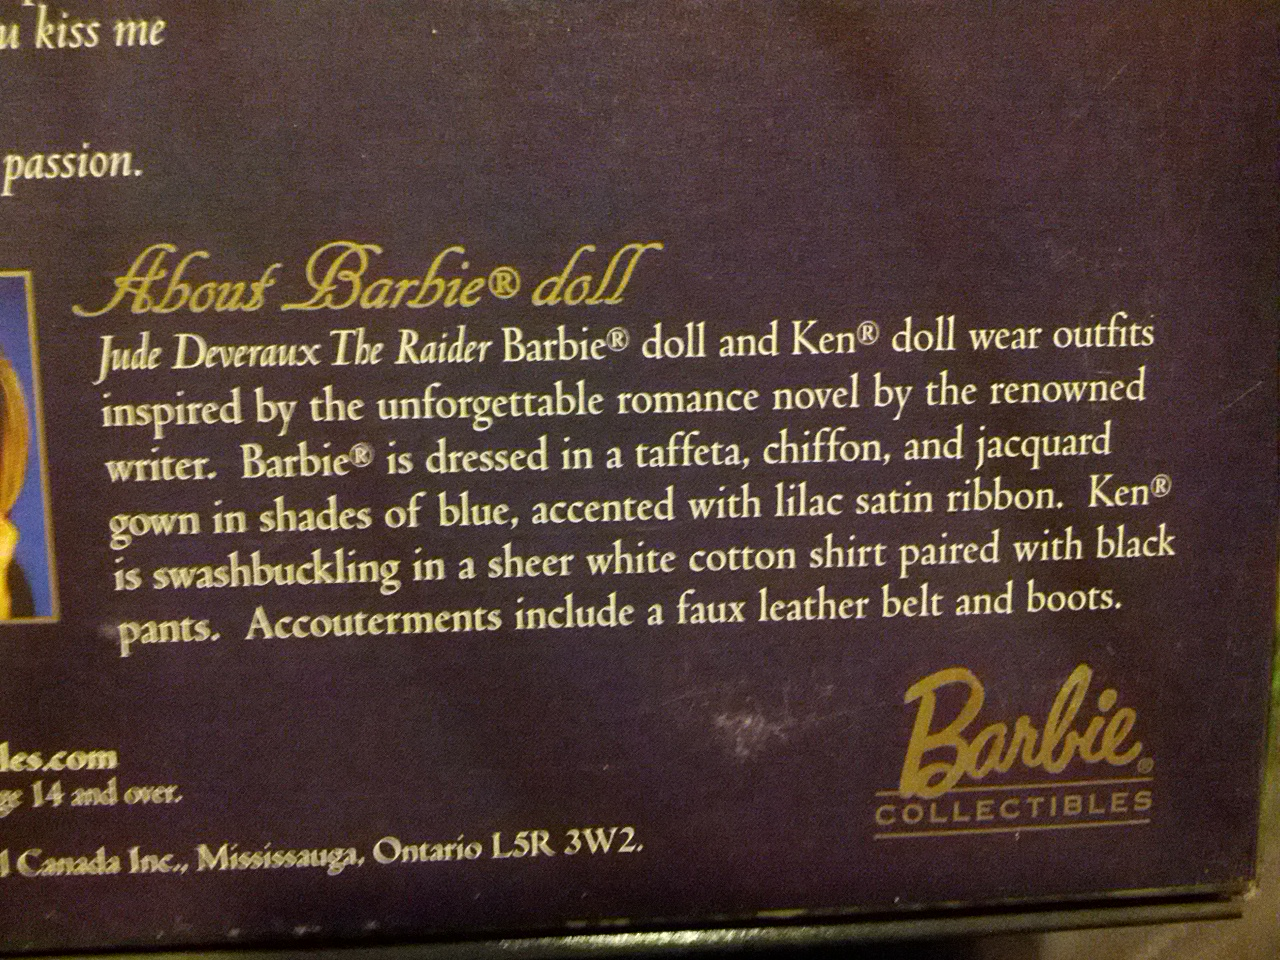 The description reassures the reader that the Barbie is dressed in taffeta, chiffon and jacquard, while Ken is swashbuckling in a sheer white cottong shirt. There are also accouterments.